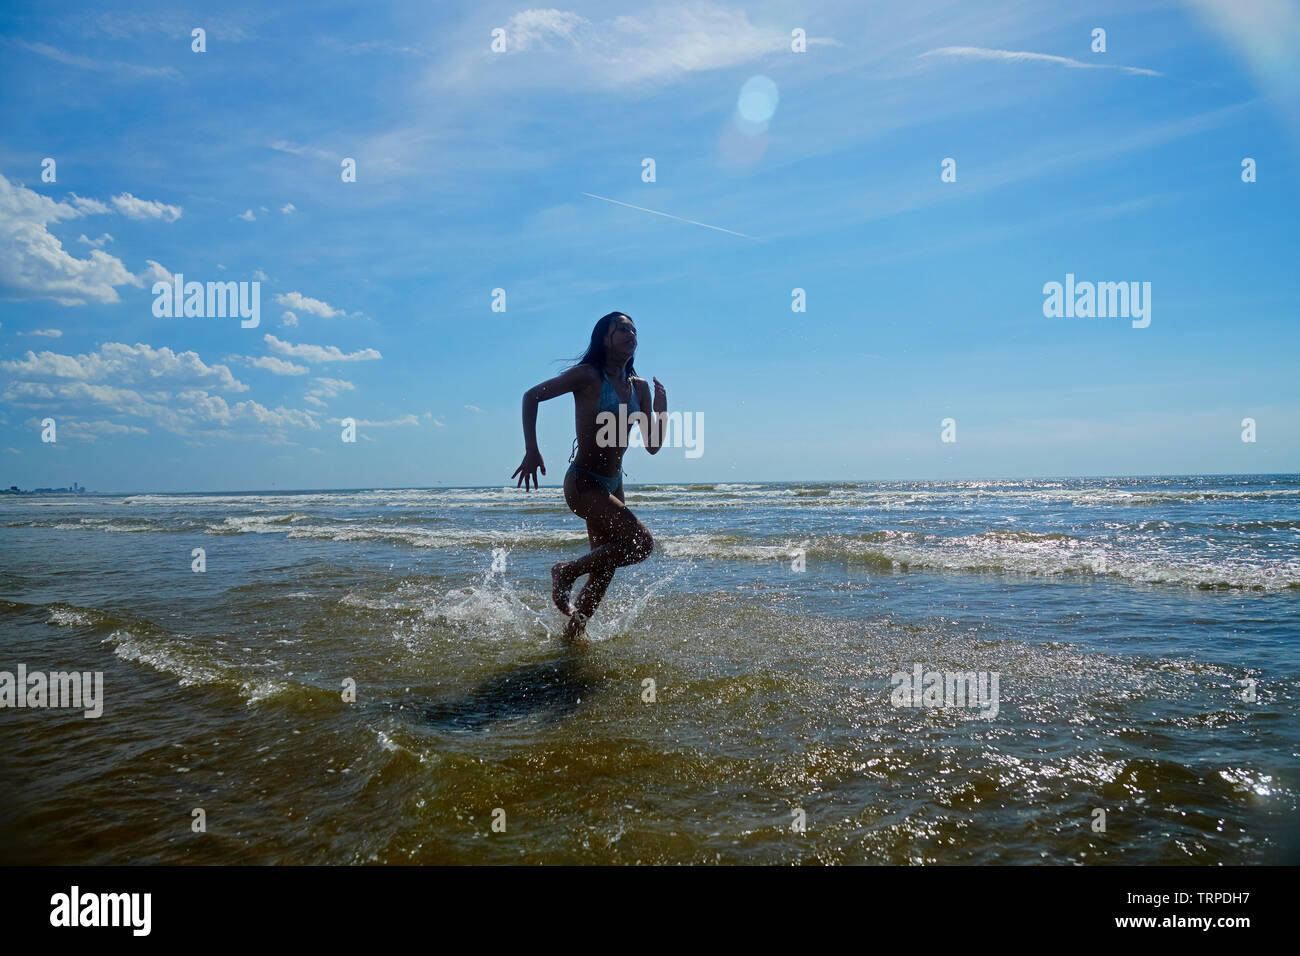 Young Asian girl in swimwear running and splashing in the ocean on a hot day in bright summer sunshine - Stock Image